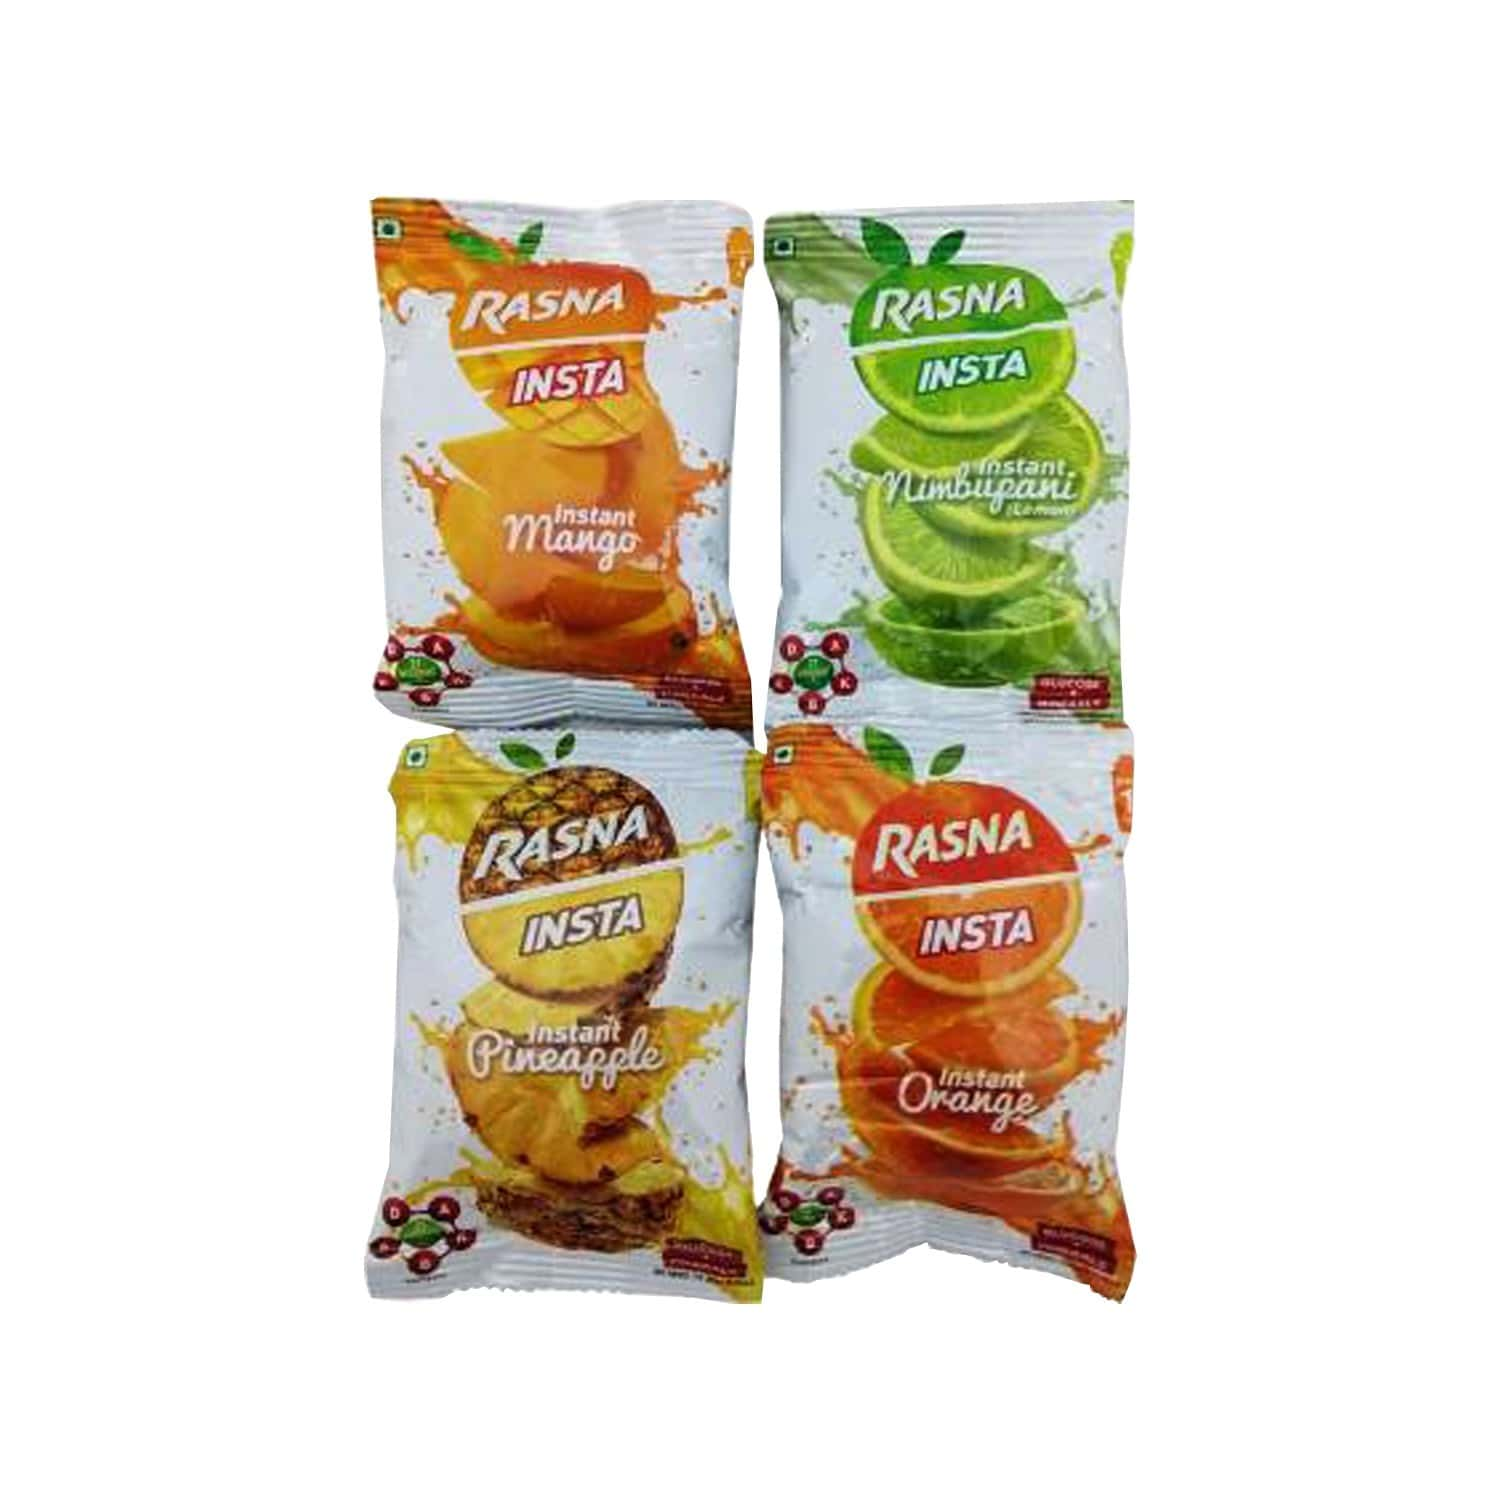 Rasna Insta Drink Concentrate Mix 100g X 4 - Free 1 Litre Sipper